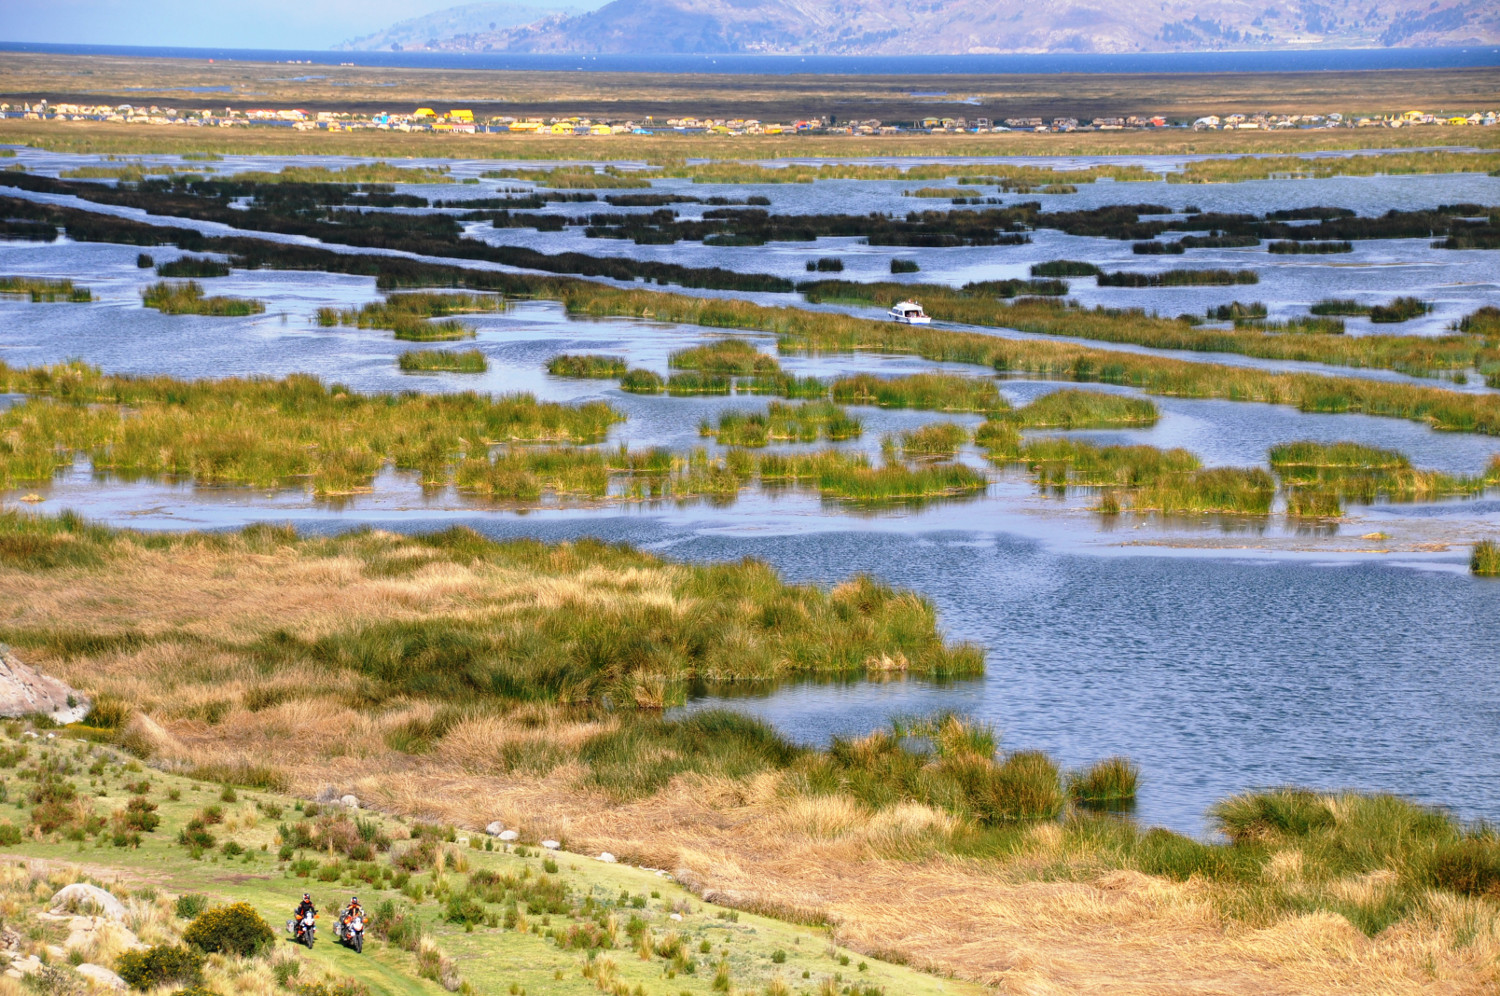 Titicacasee: immer am Ufer entlang   Lake Titicaca, still along the banks